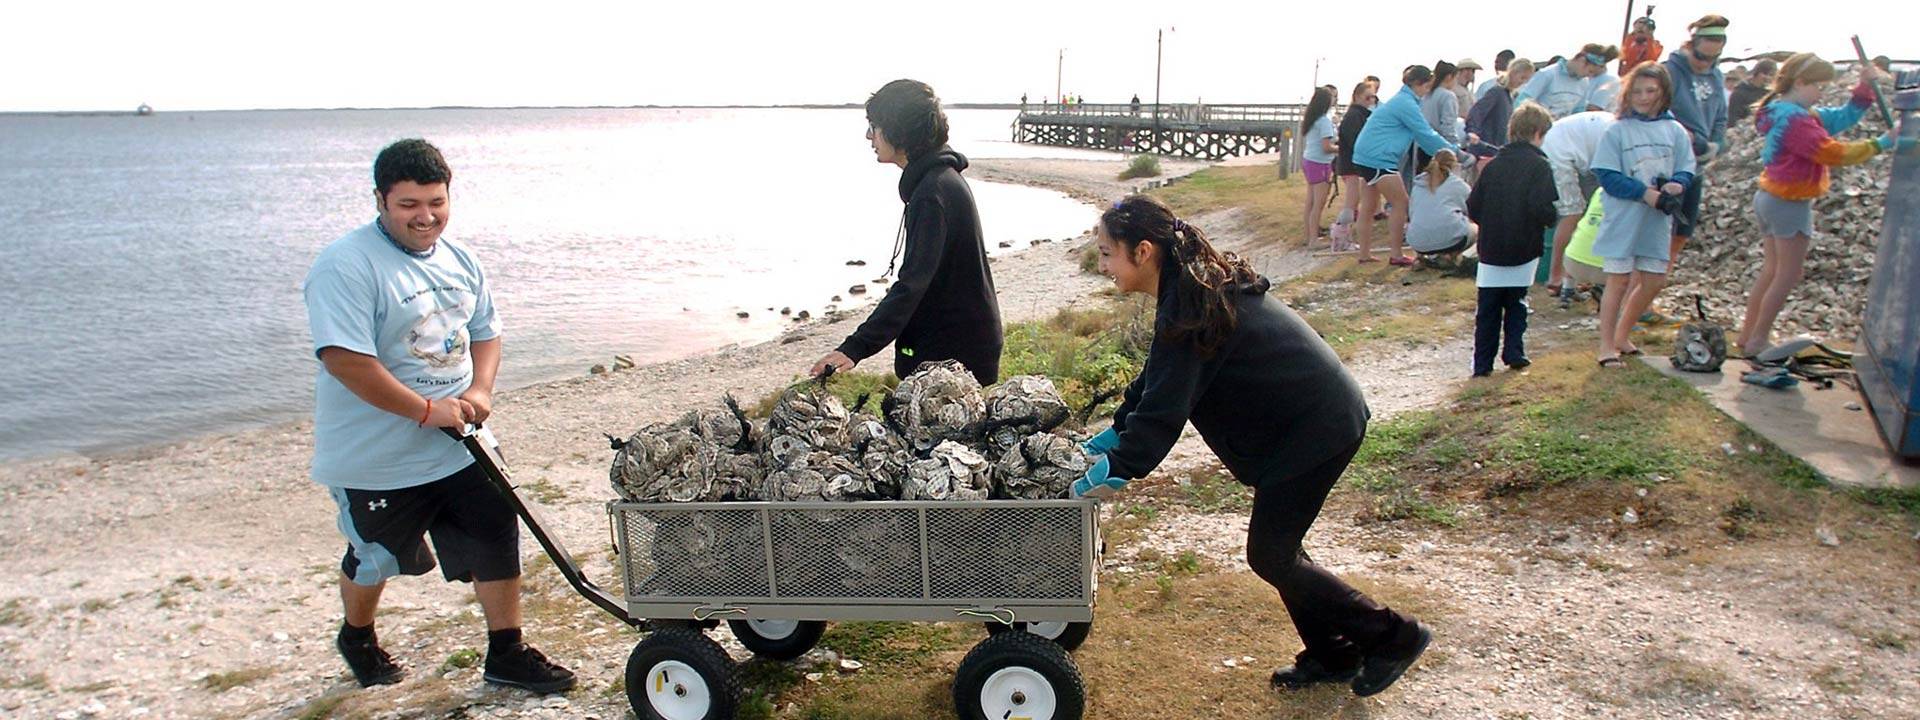 Photo of Texas aquatic science field trip showing students volunteering and having fun restoring oysters in Corpus Christi Bay, from the book Texas Aquatic Science by Rudolph Rosen. Photo credit: Corpus Christi Caller-Times.